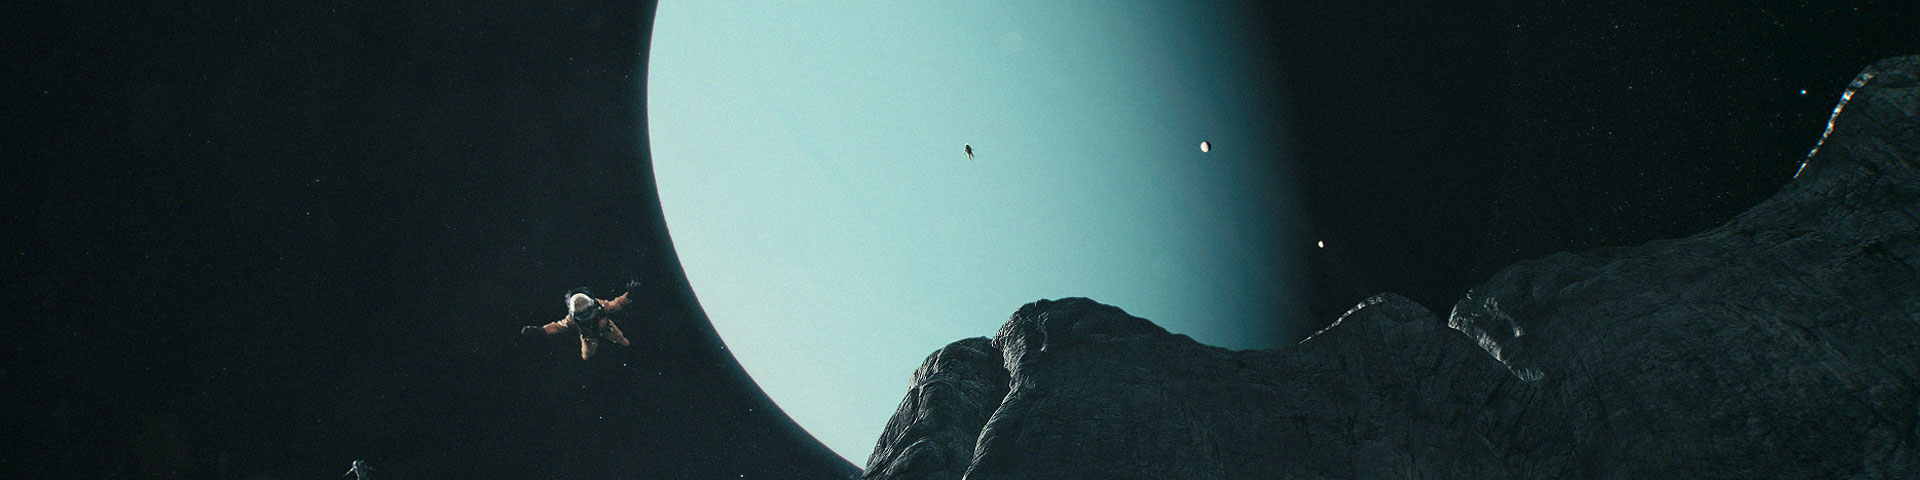 Explorers jump from cliffs on a moon of Uranus. The blue gas giant rises in the background.